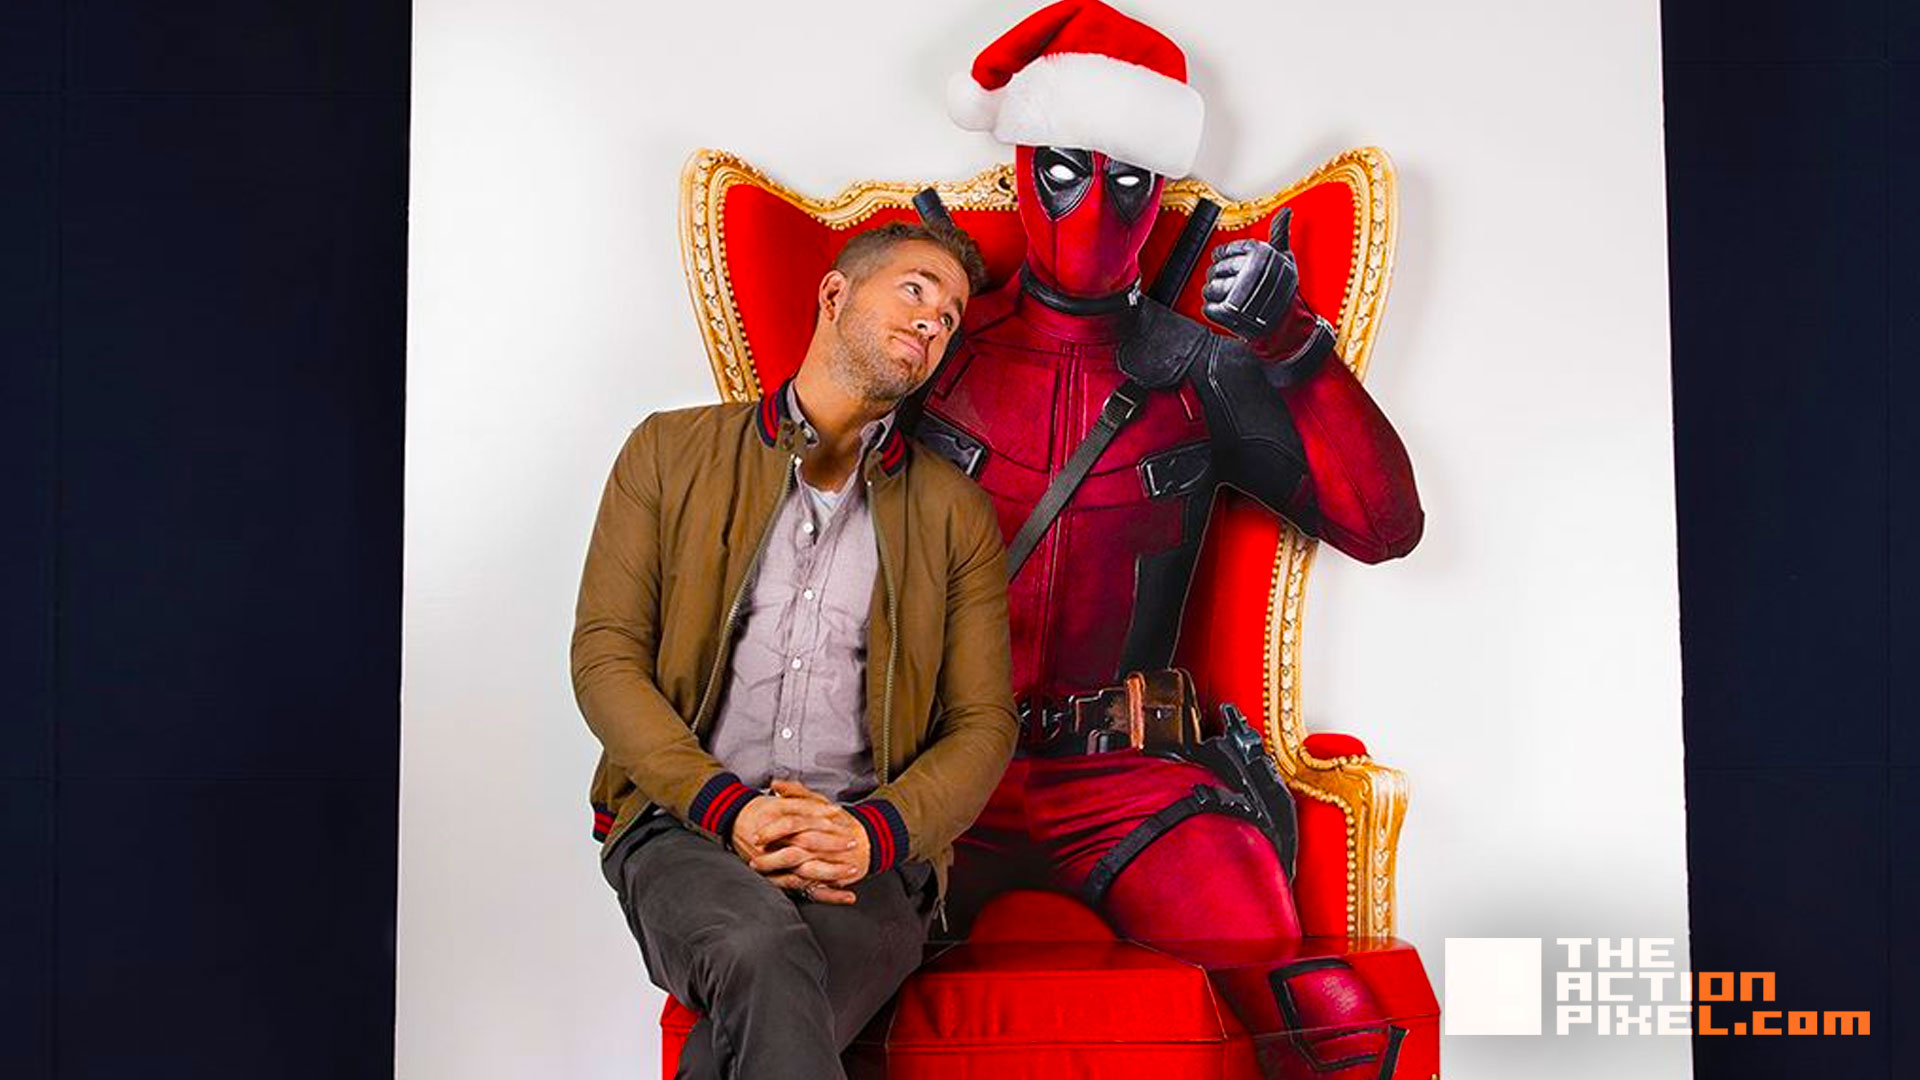 deadpool santa ryan reynolds. deadpool. #12daysofChristmas. 20th century fox. marvel. the action pixel. @theactionpixel